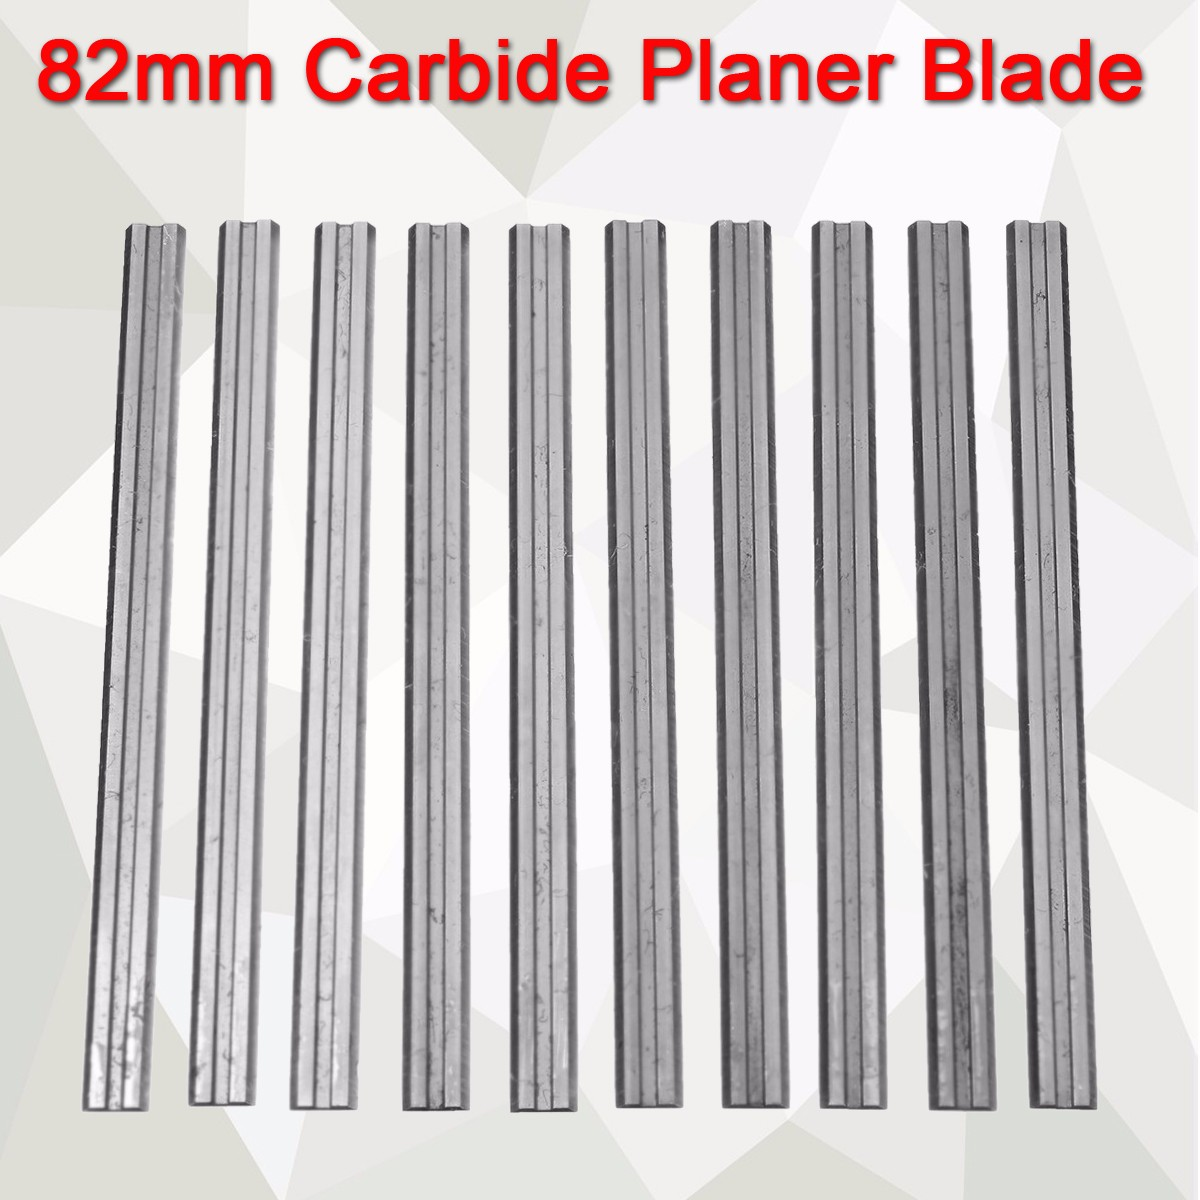 10Pcs 82mm X 5.5mm Reversible Carbide Planer Blades For Cutting Soft Hard Woods Ply-wood Board Woodworking Power Tool